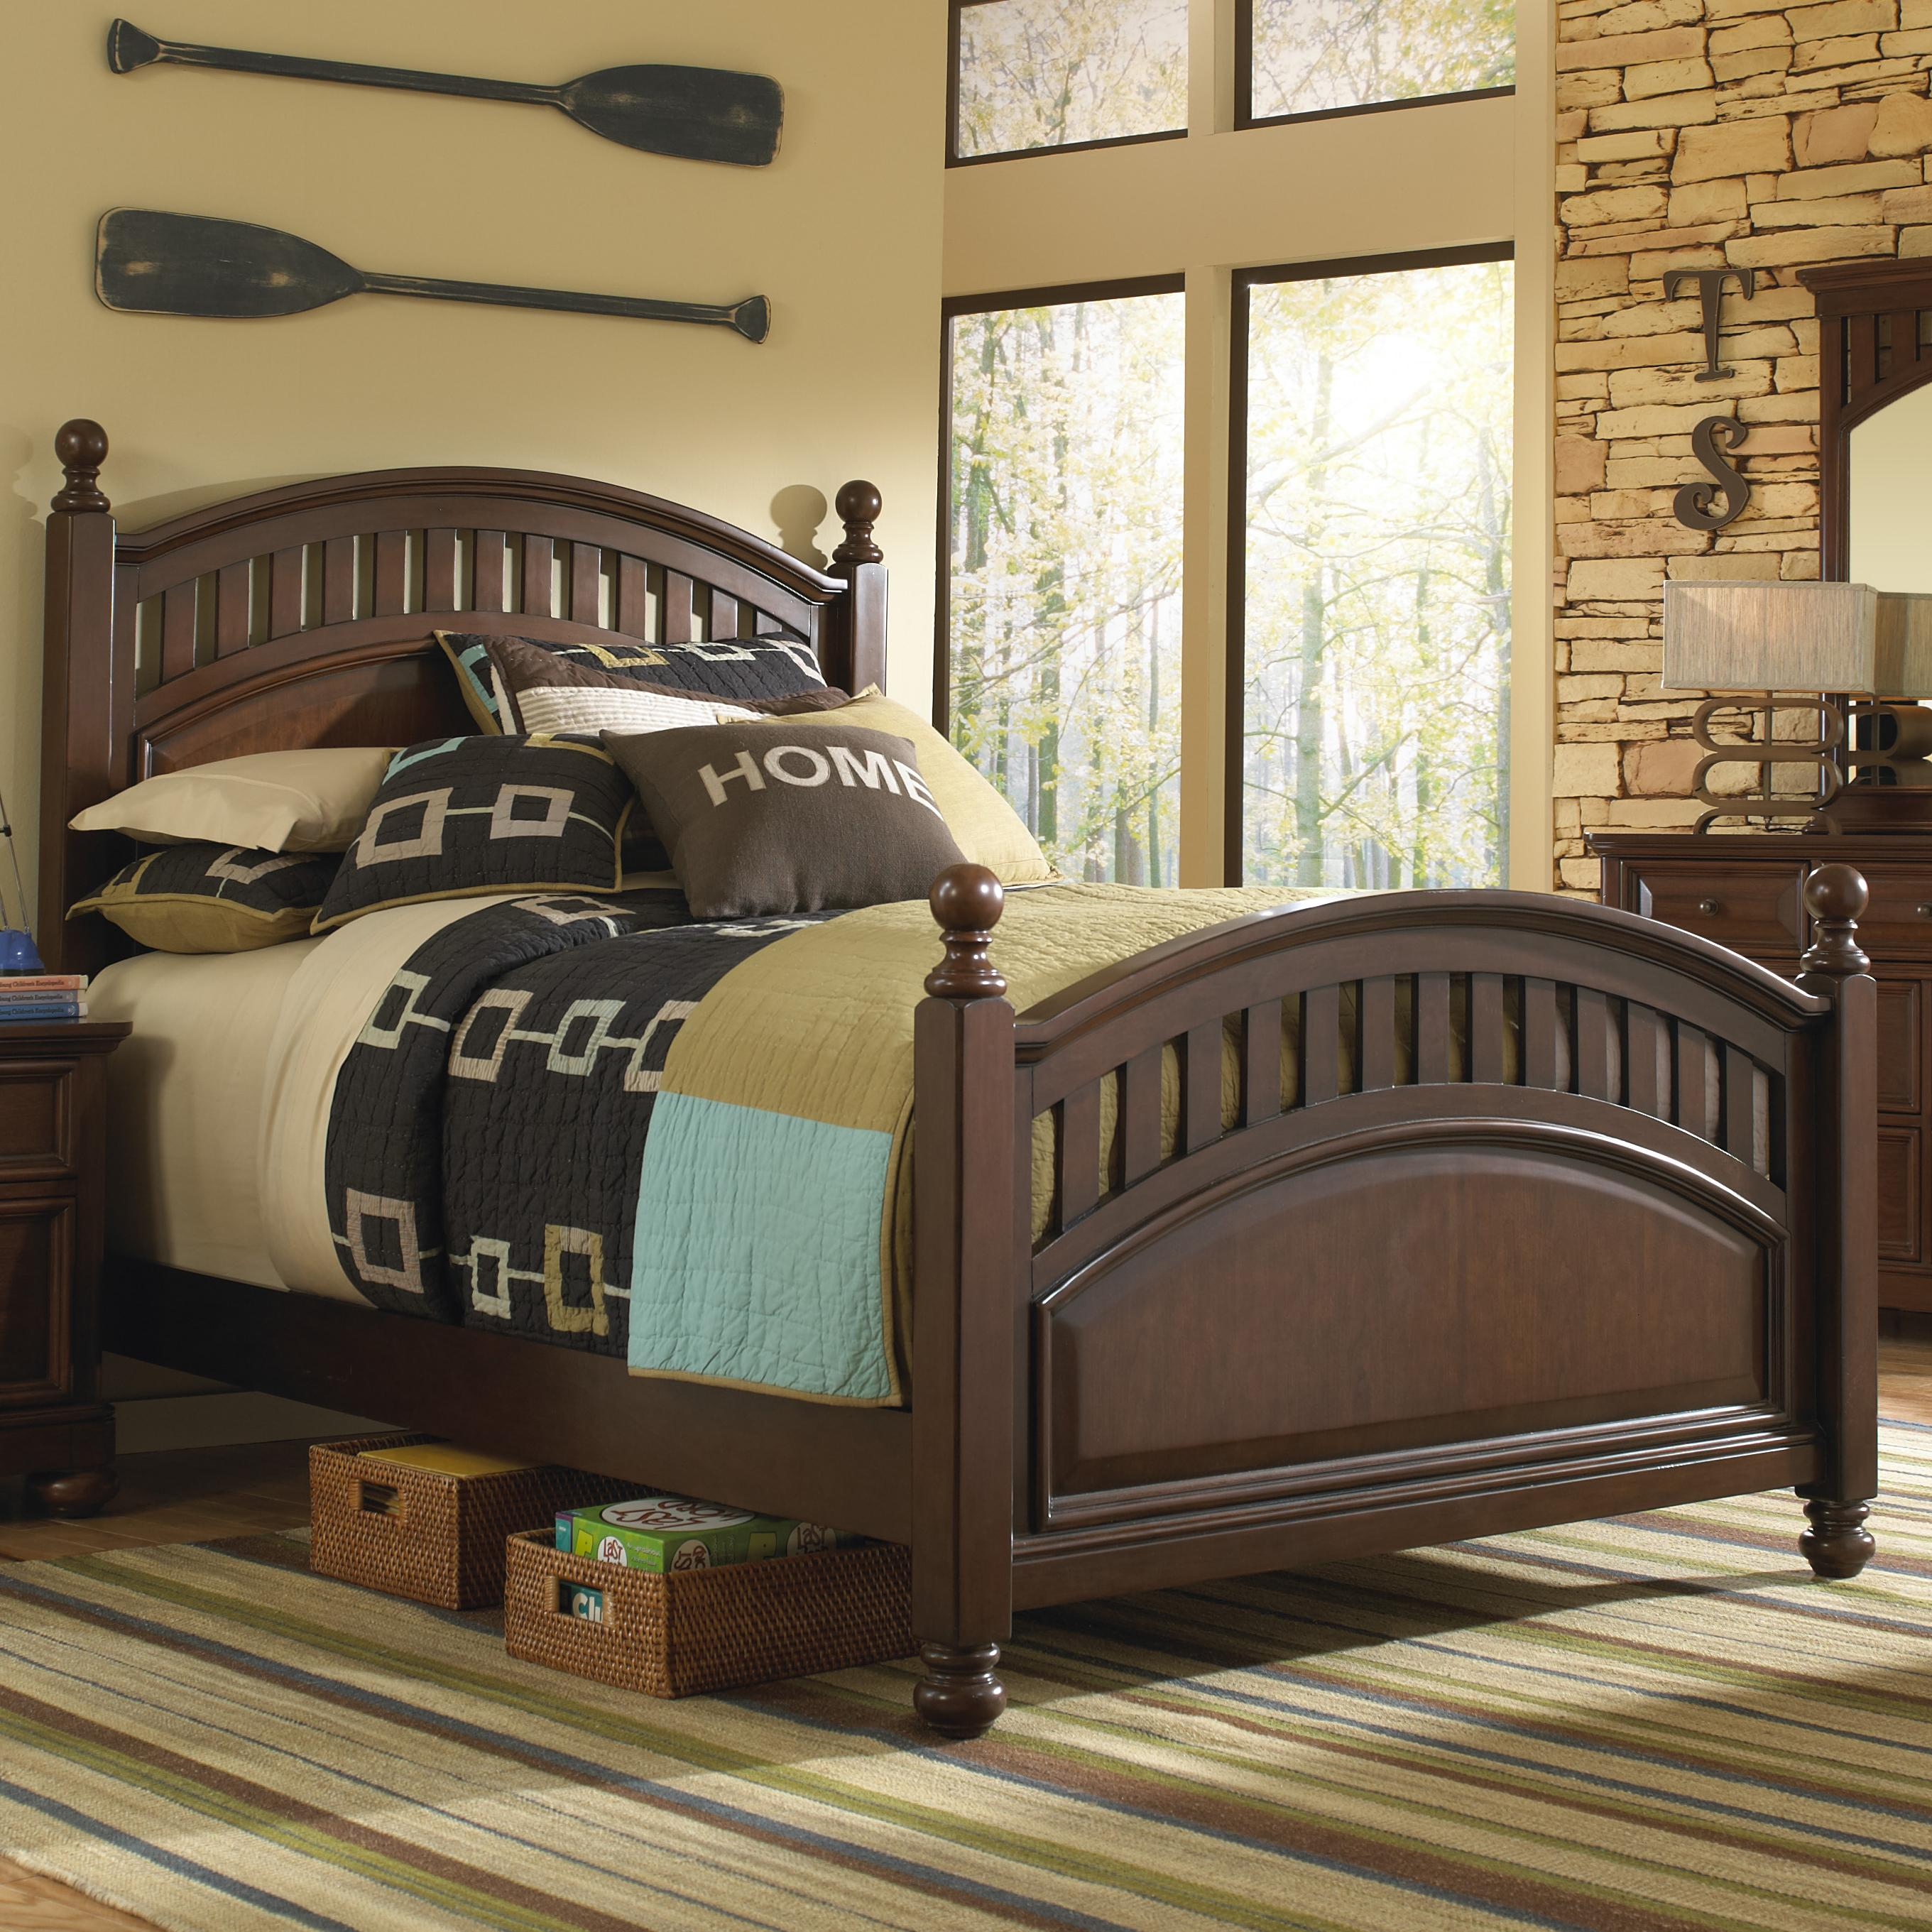 Morris Home Furnishings Edgewood Edgewood Twin Post Bed - Item Number: 8468-630+631+401